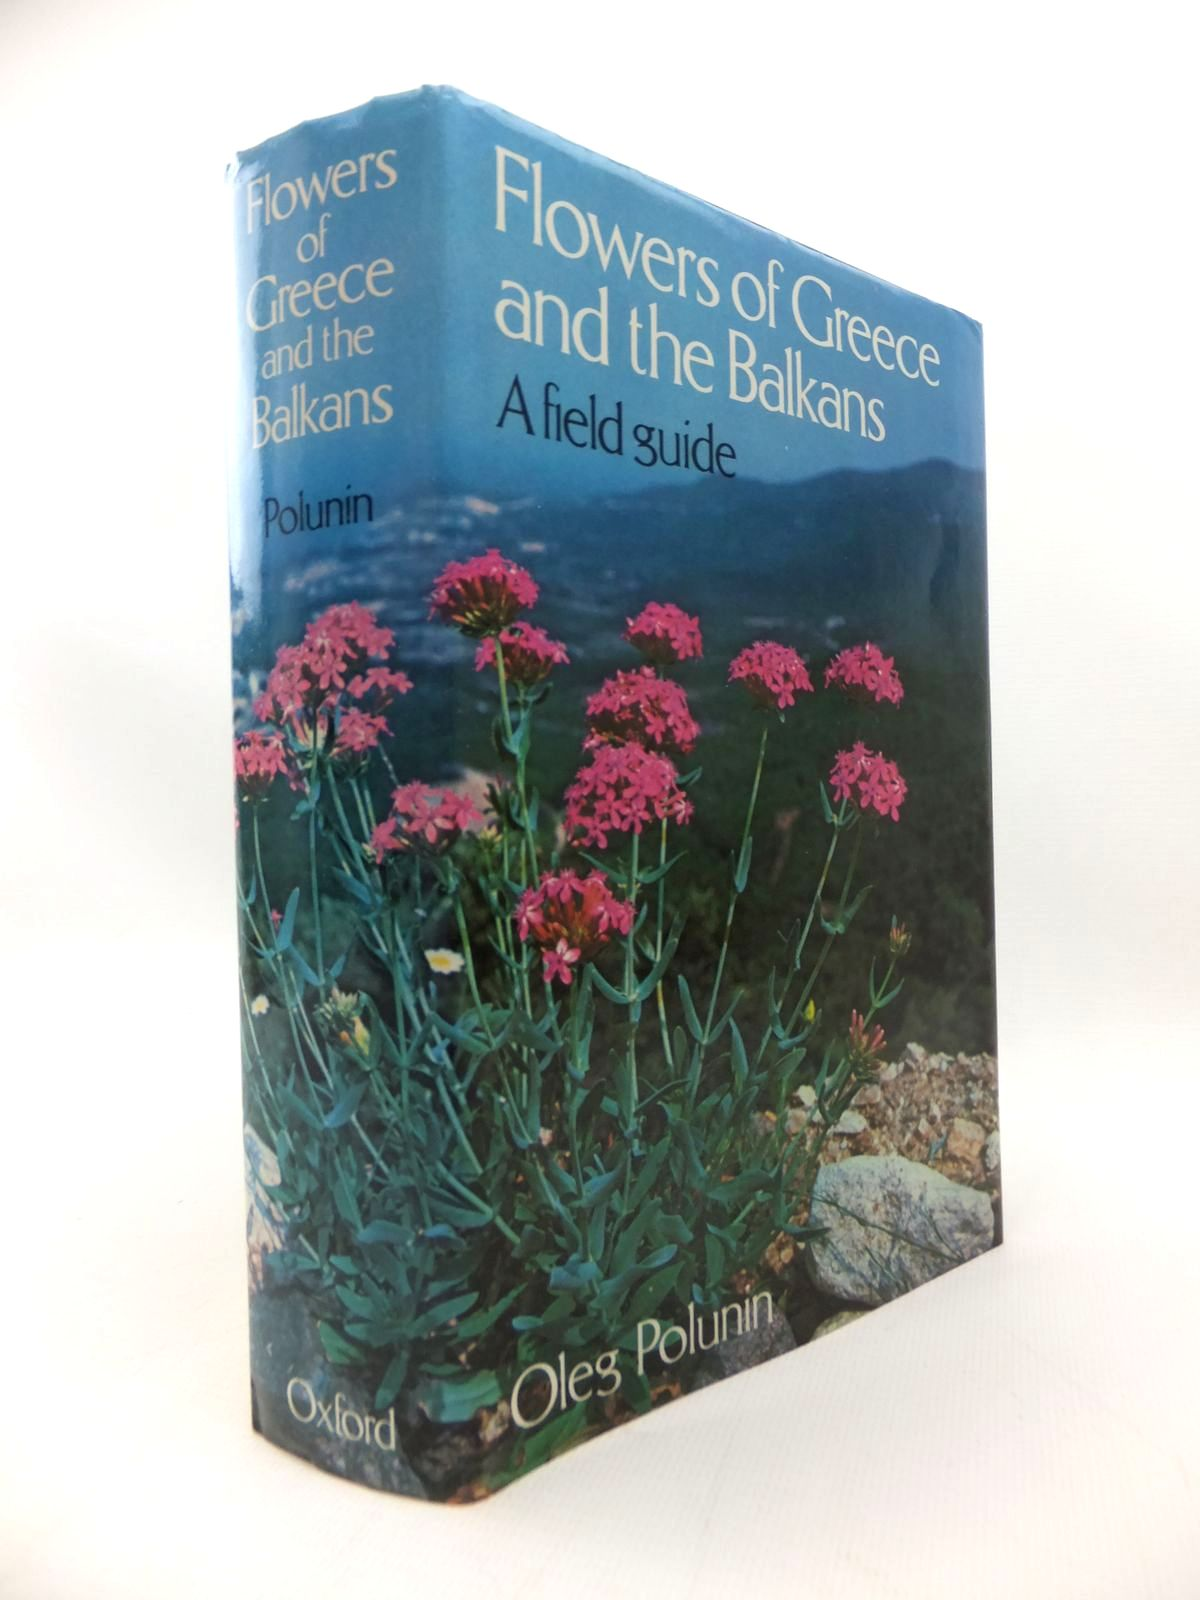 Photo of FLOWERS OF GREECE AND THE BALKANS A FIELD GUIDE